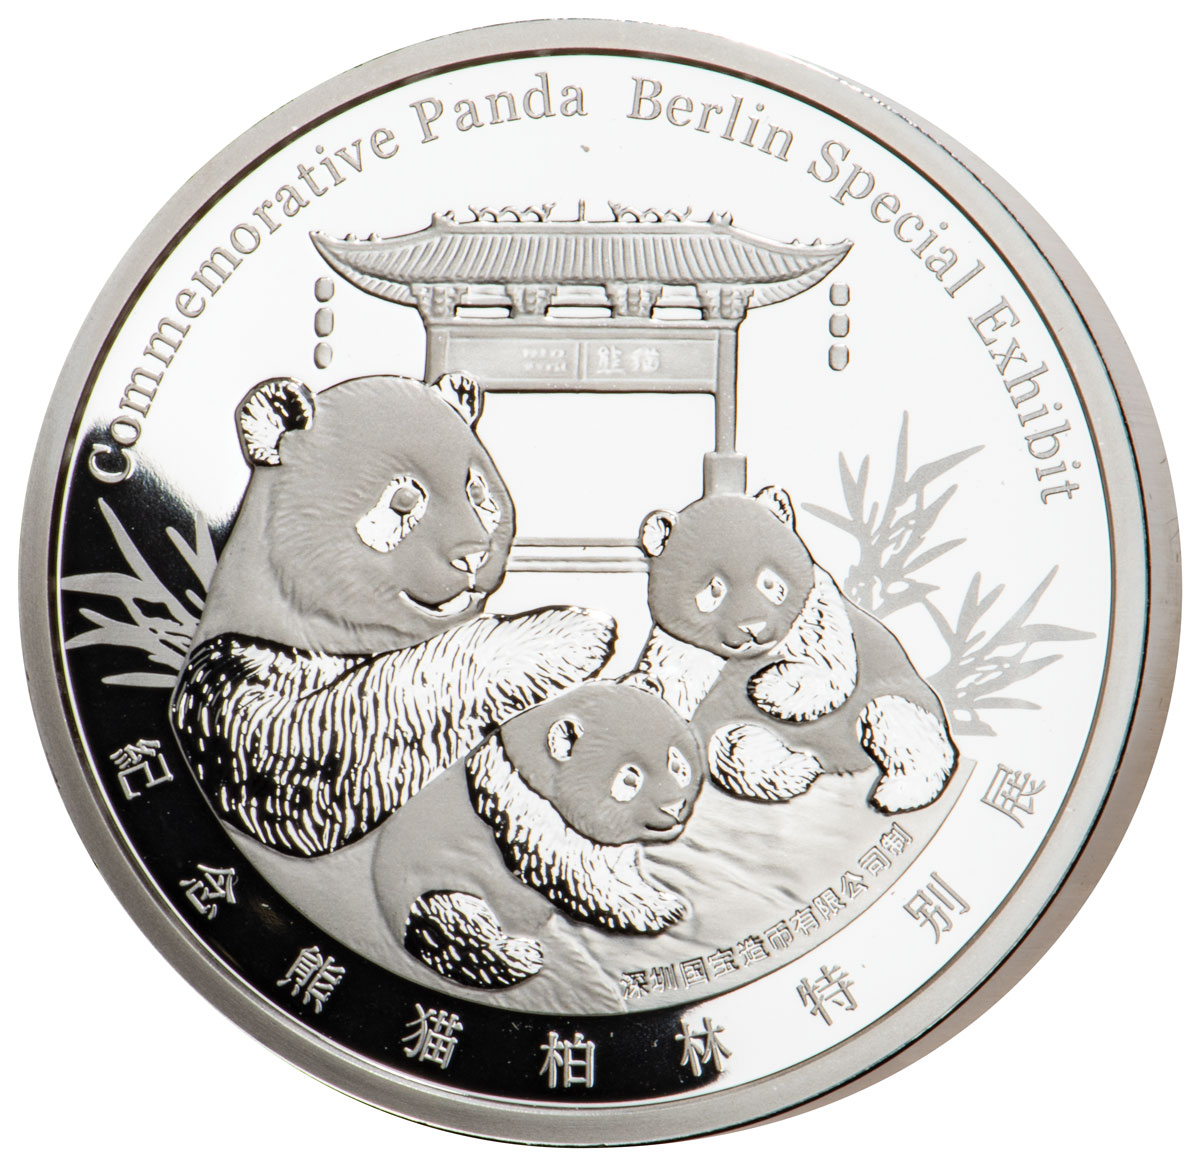 2020 China Berlin World Money Fair Silver Show Panda 50 g Silver Proof Medal GEM Proof OGP